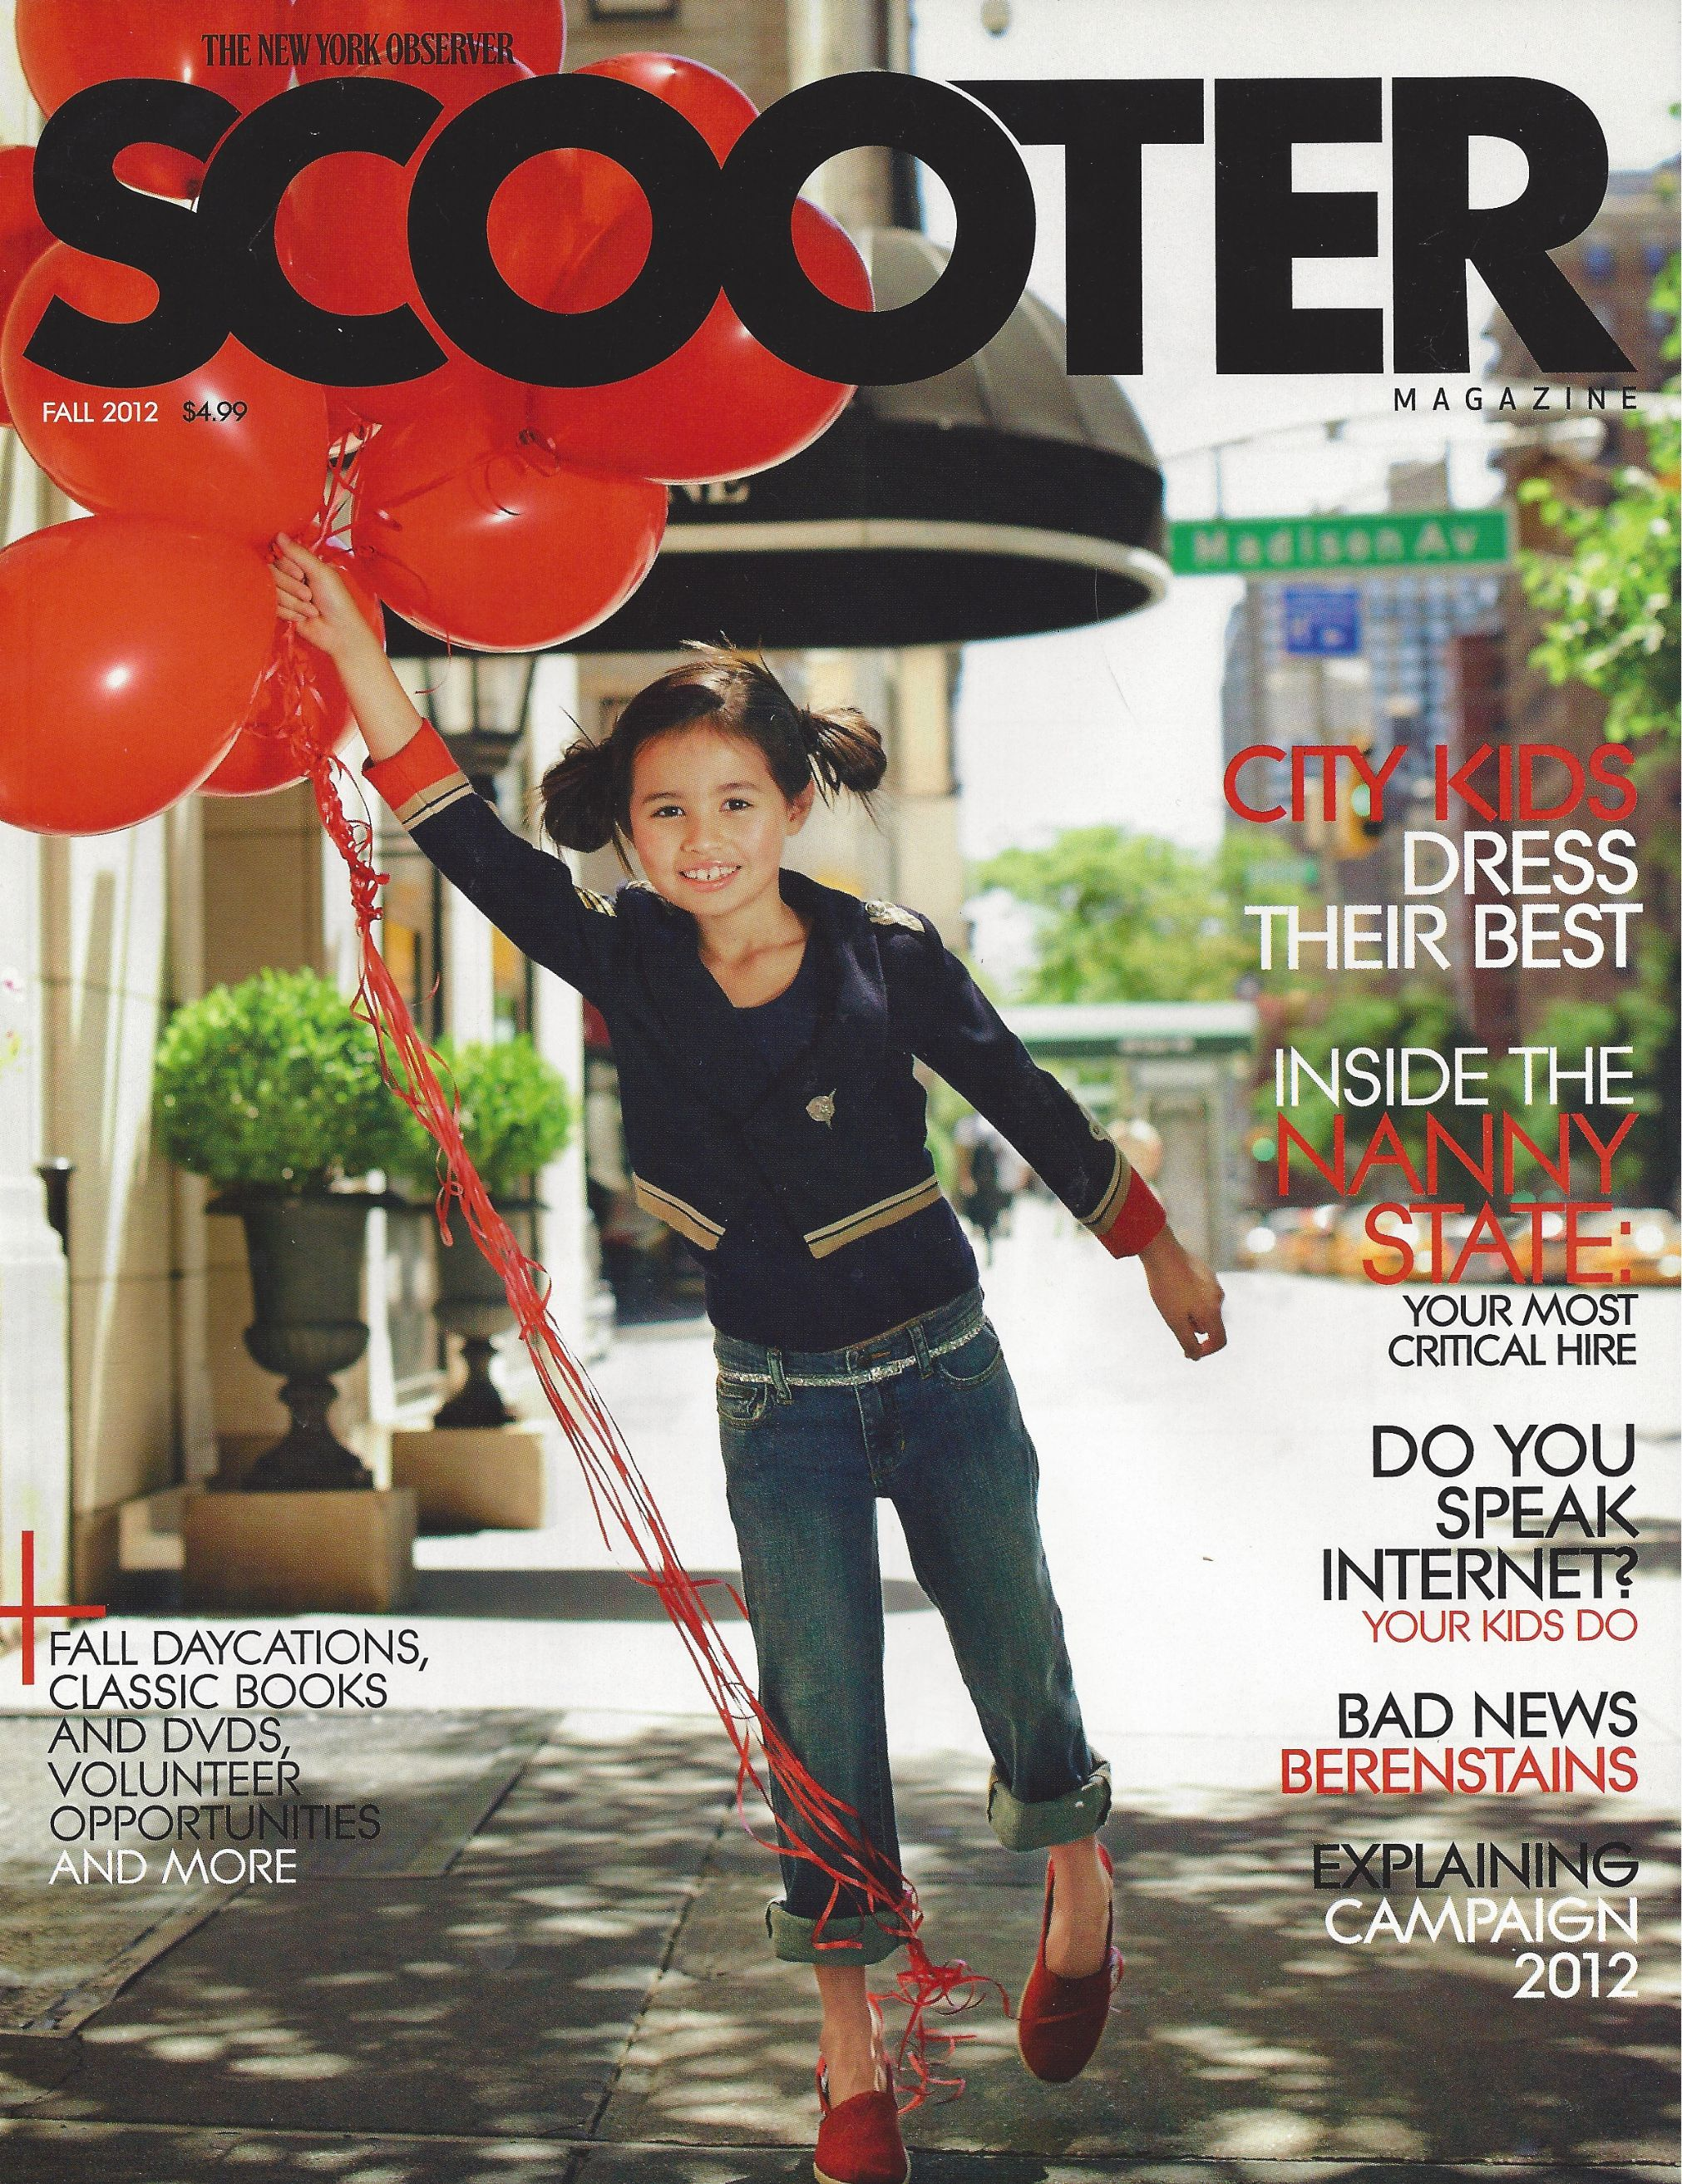 Scooter Magazine